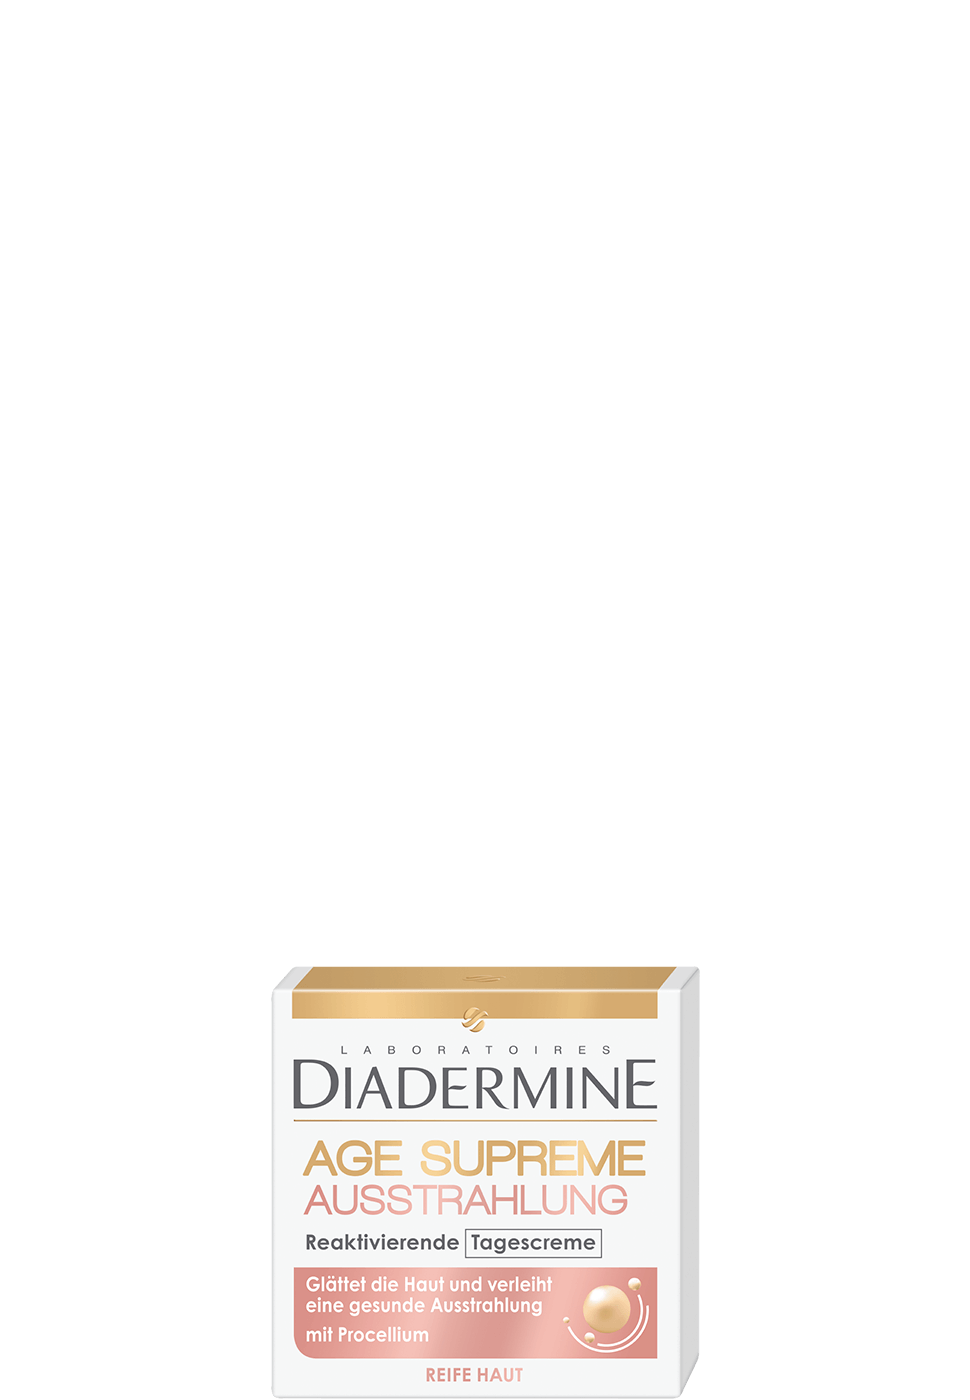 diadermine_de_age_supreme_ausstrahlung_tagescreme_970x1400